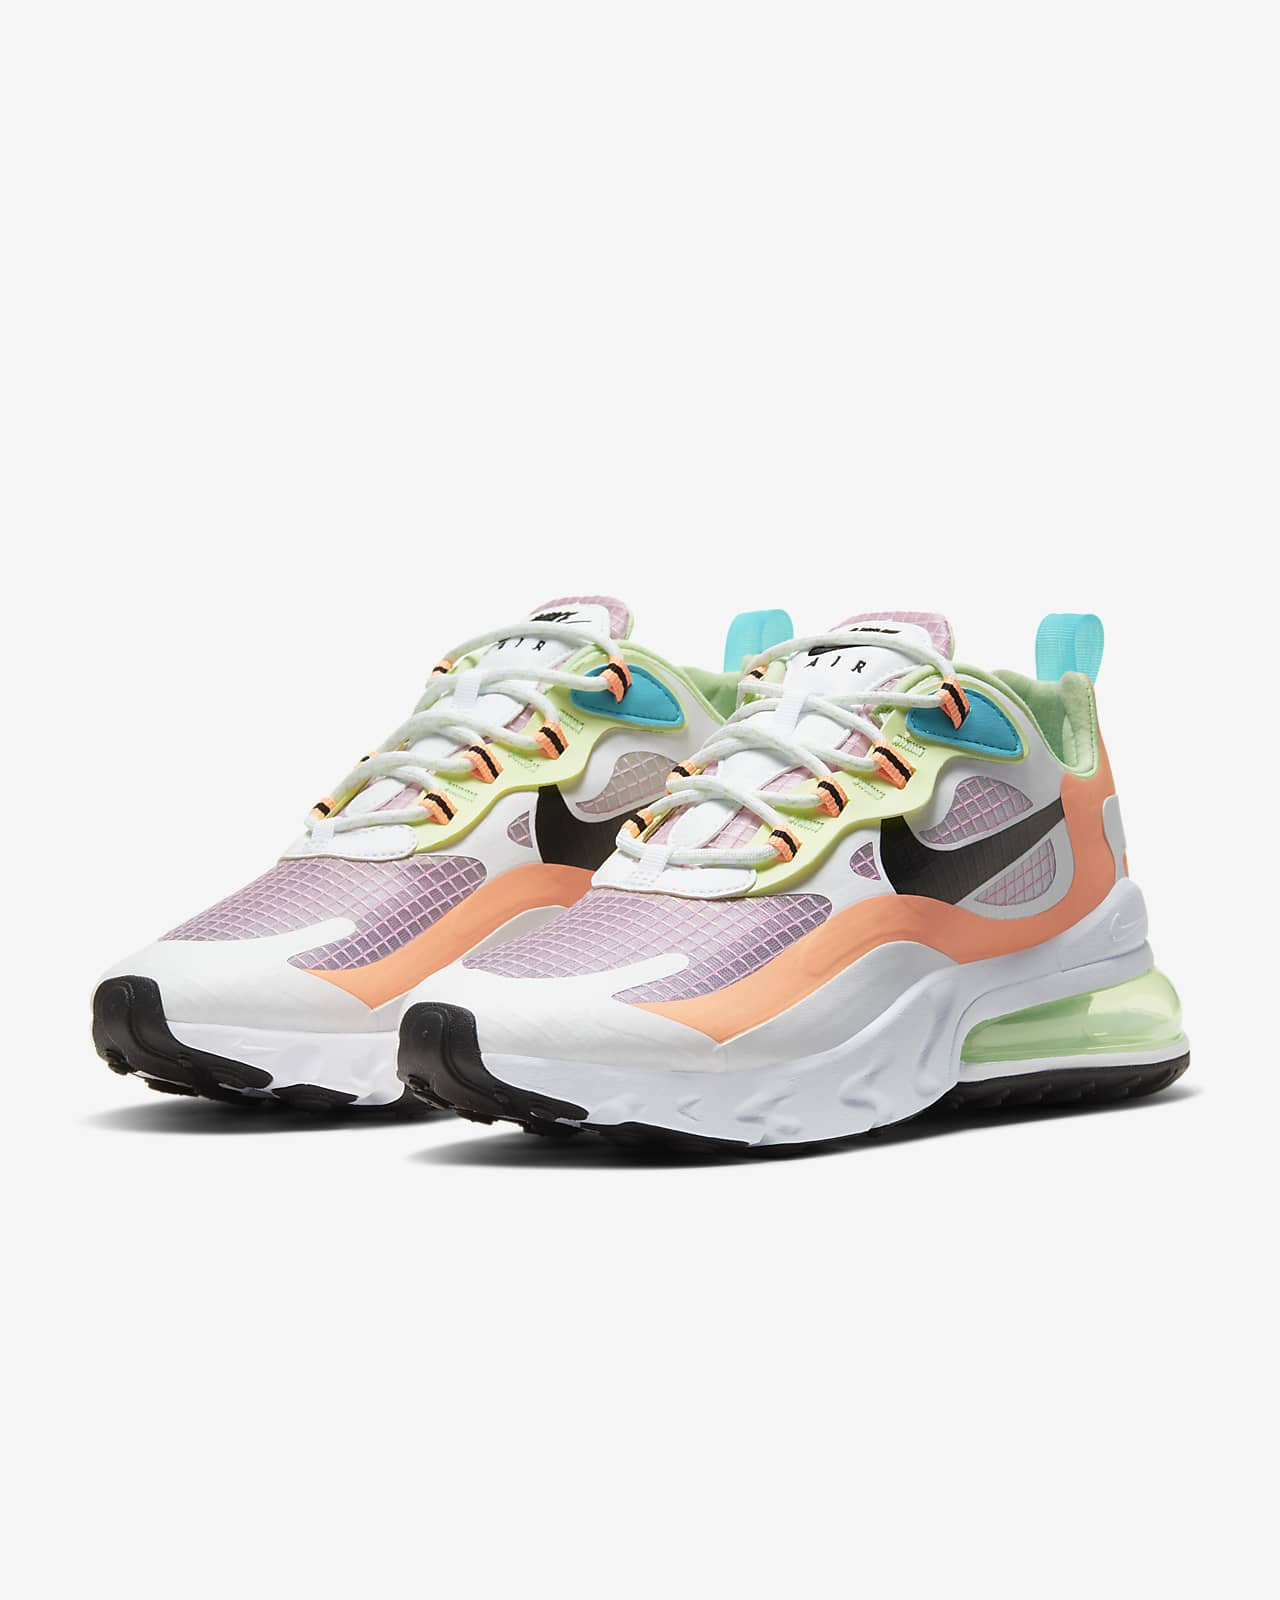 nike air max 270 white orange pink